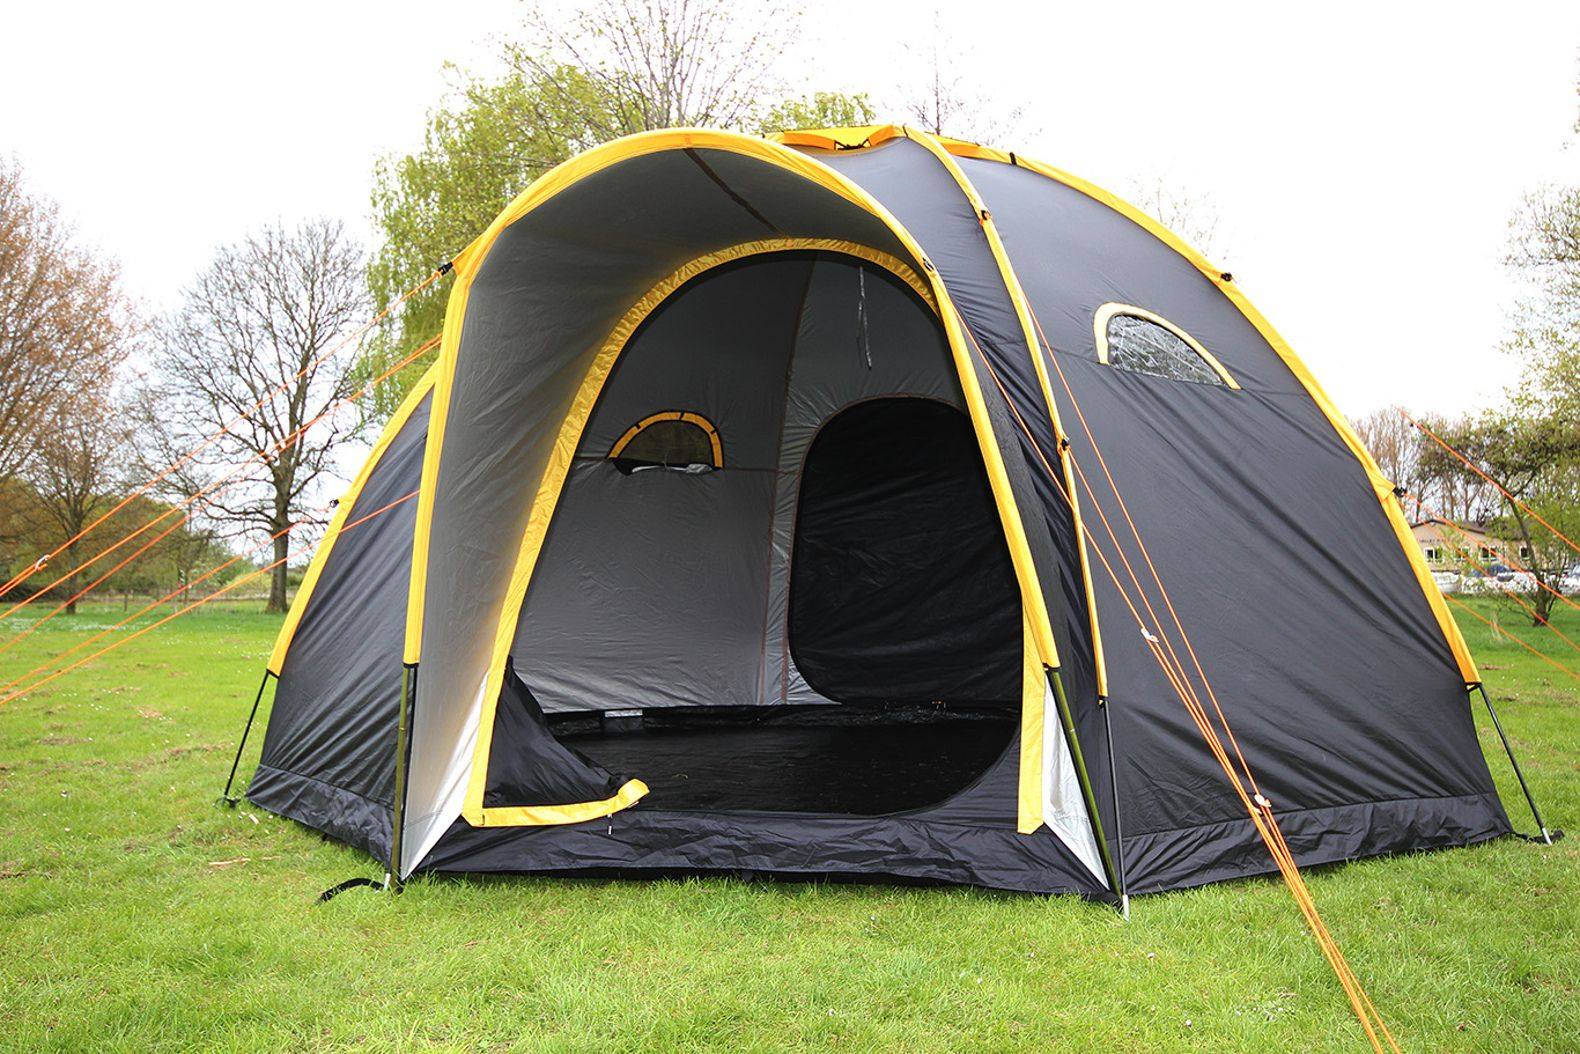 Modular POD tents connect to create multi-room c&ing getaways for family and friends & Modular POD tents connect to create multi-room camping getaways ...